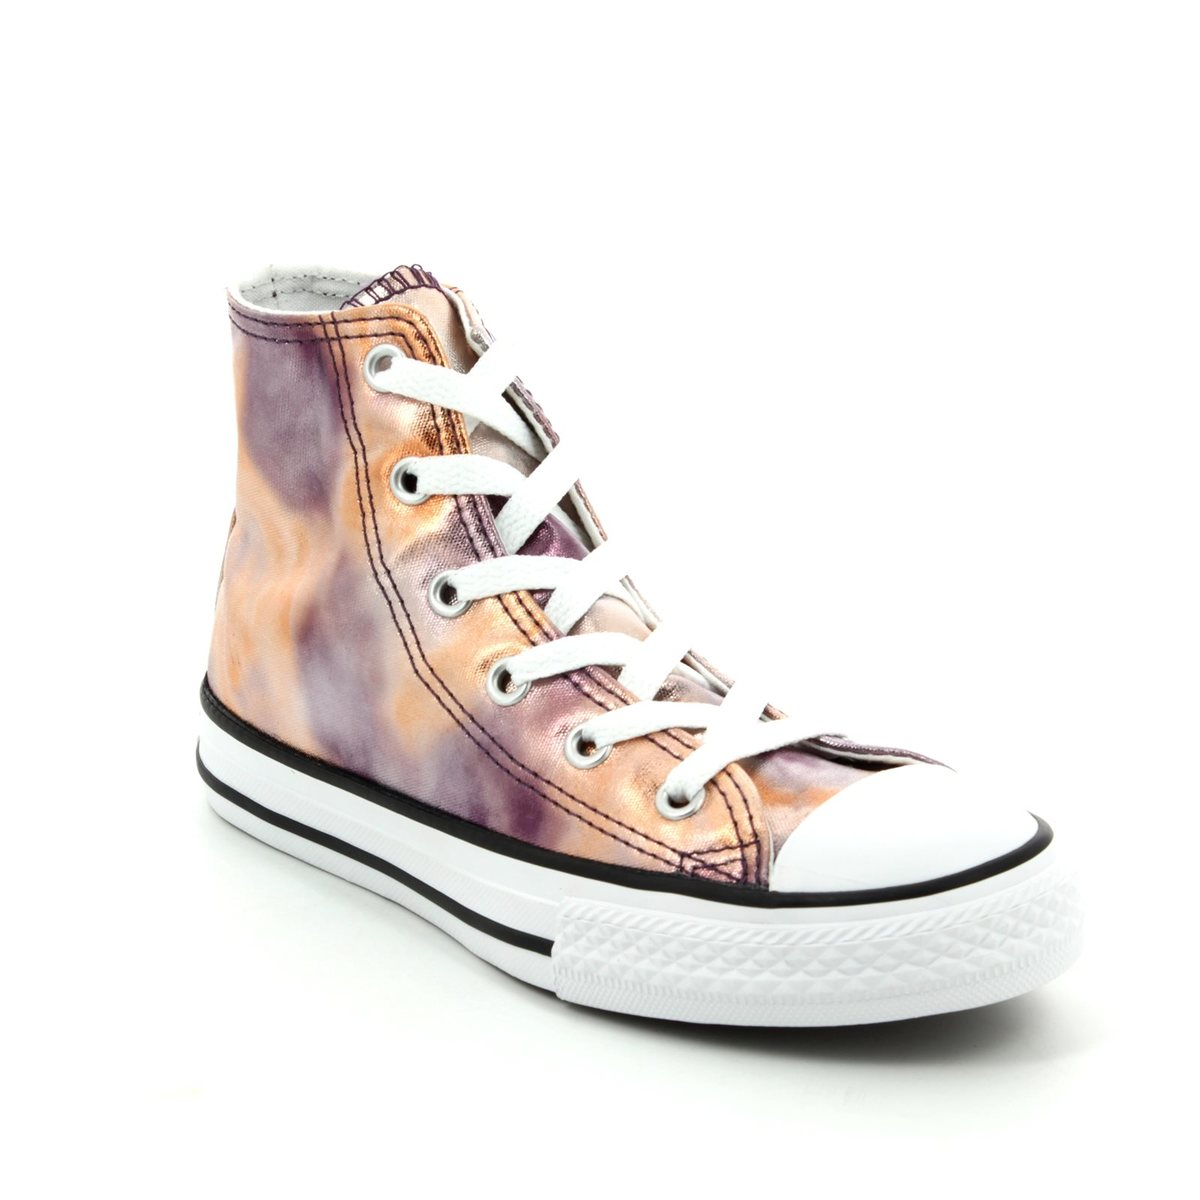 8fbb9a1a52c0 Converse Trainers - Pink - 357619C Chuck Taylor All Star Hi Top Junior